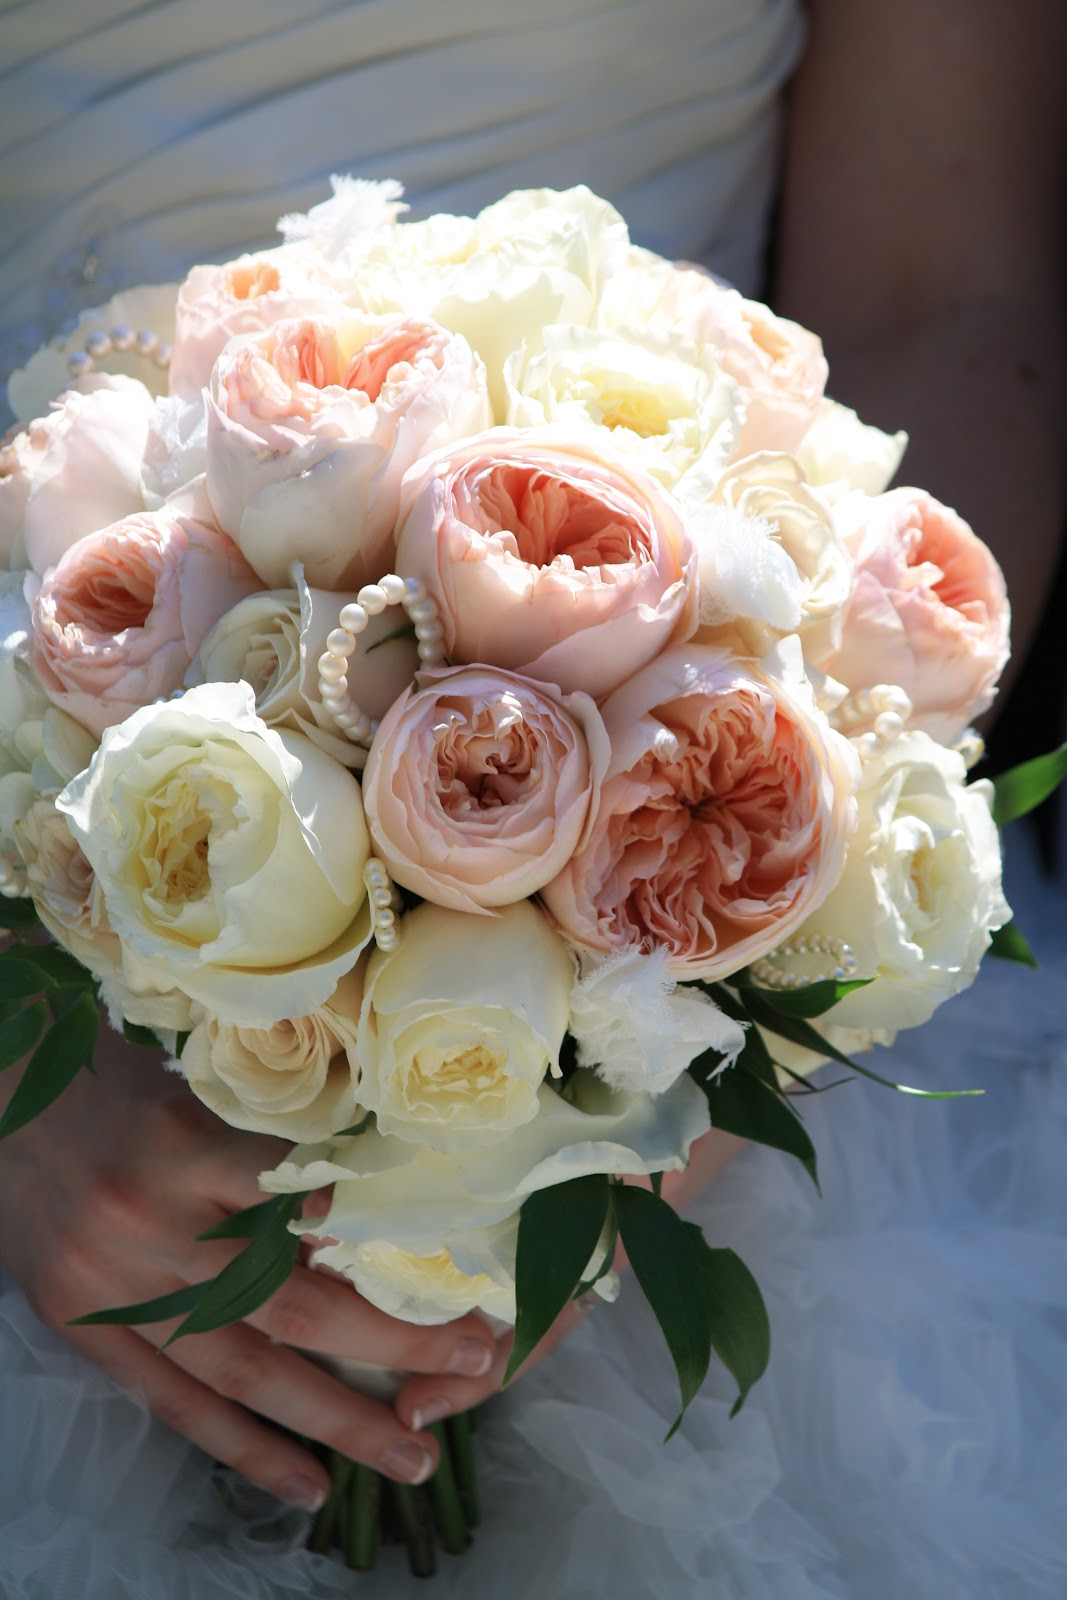 Rose Bouquet, Sahara roses, David Austin Juliet garden roses, Rose Bridal Bouquet, Rose Bouqet, Wedding Bouquet - Splendid Stems Wedding Flowers - Wedding Florist